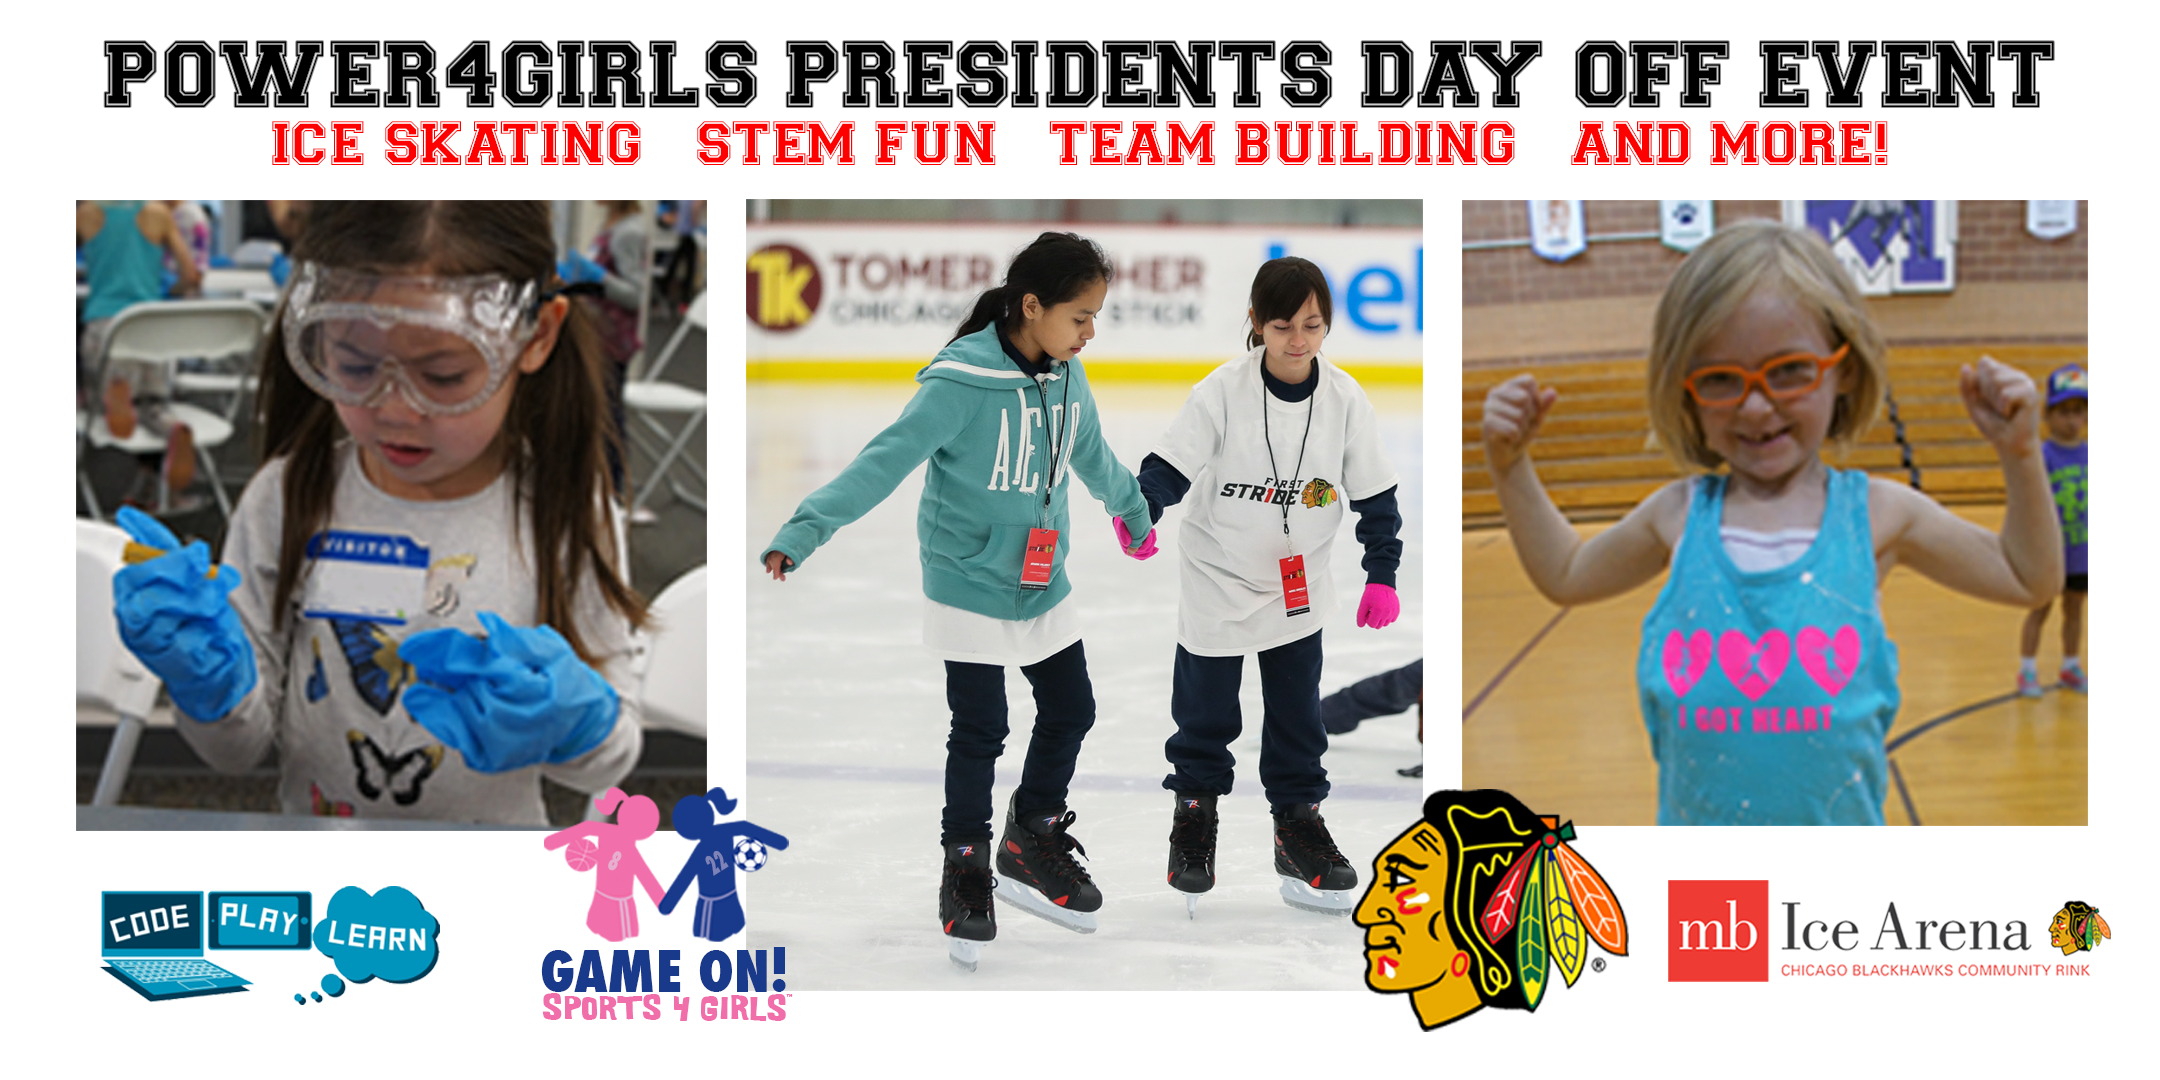 Power4Girls Presidents Day Off Event 2018 - C